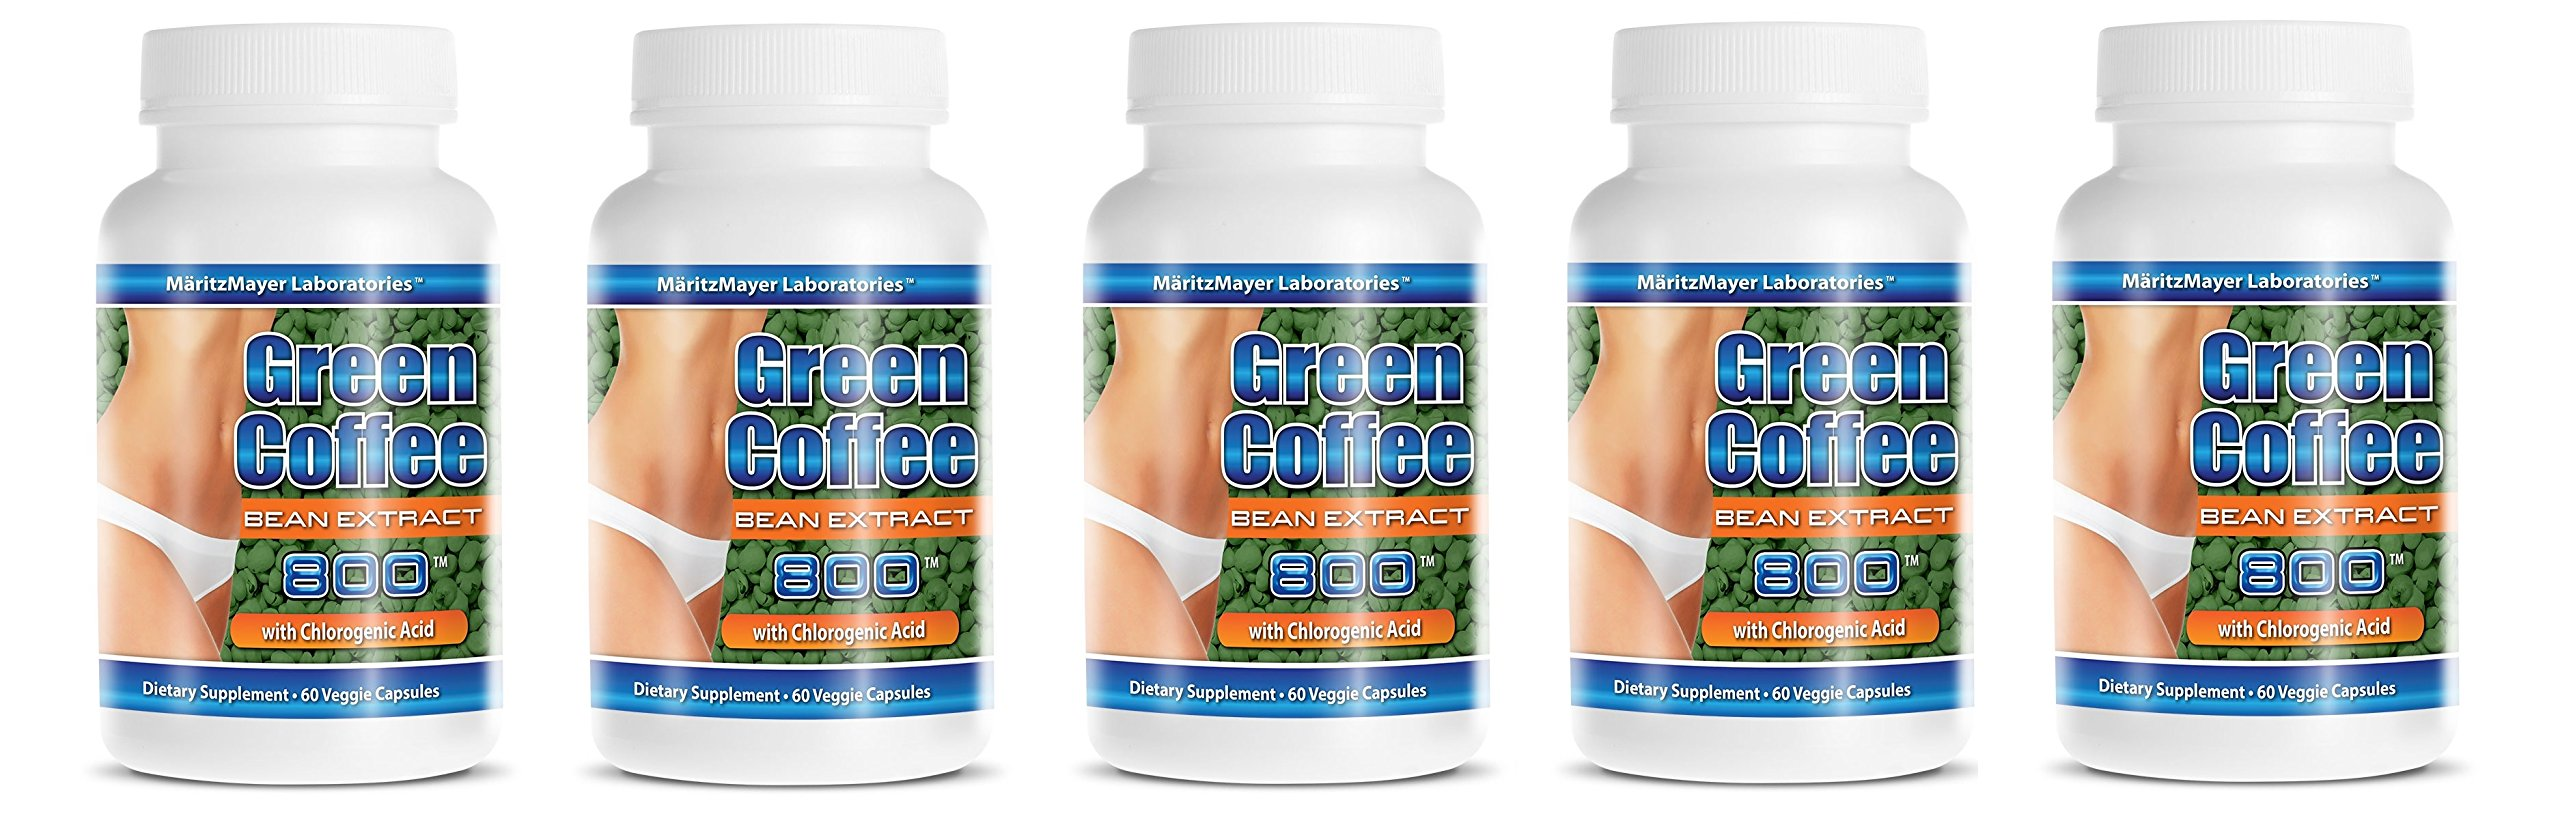 Pure Green Coffee Extract 800 mg Diet Weight Loss Pill 60 Capsules Per Bottle (5 Bottles)